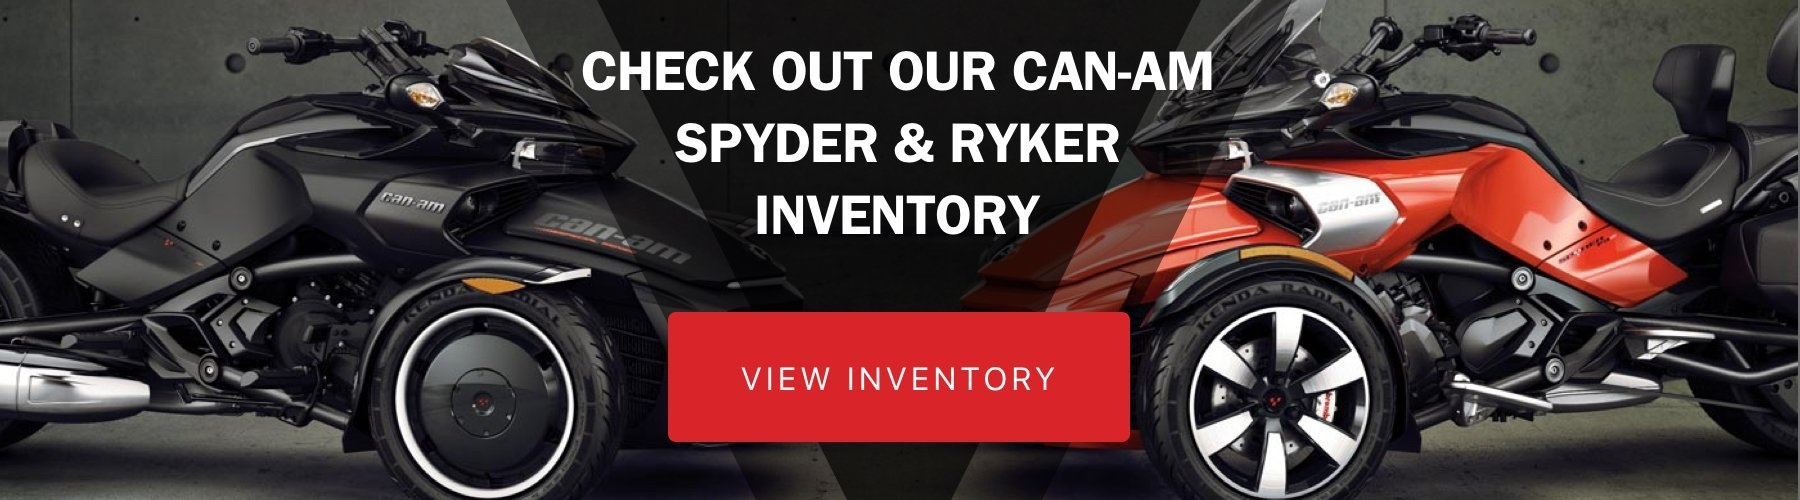 can-am-spyder-ryker-inventory